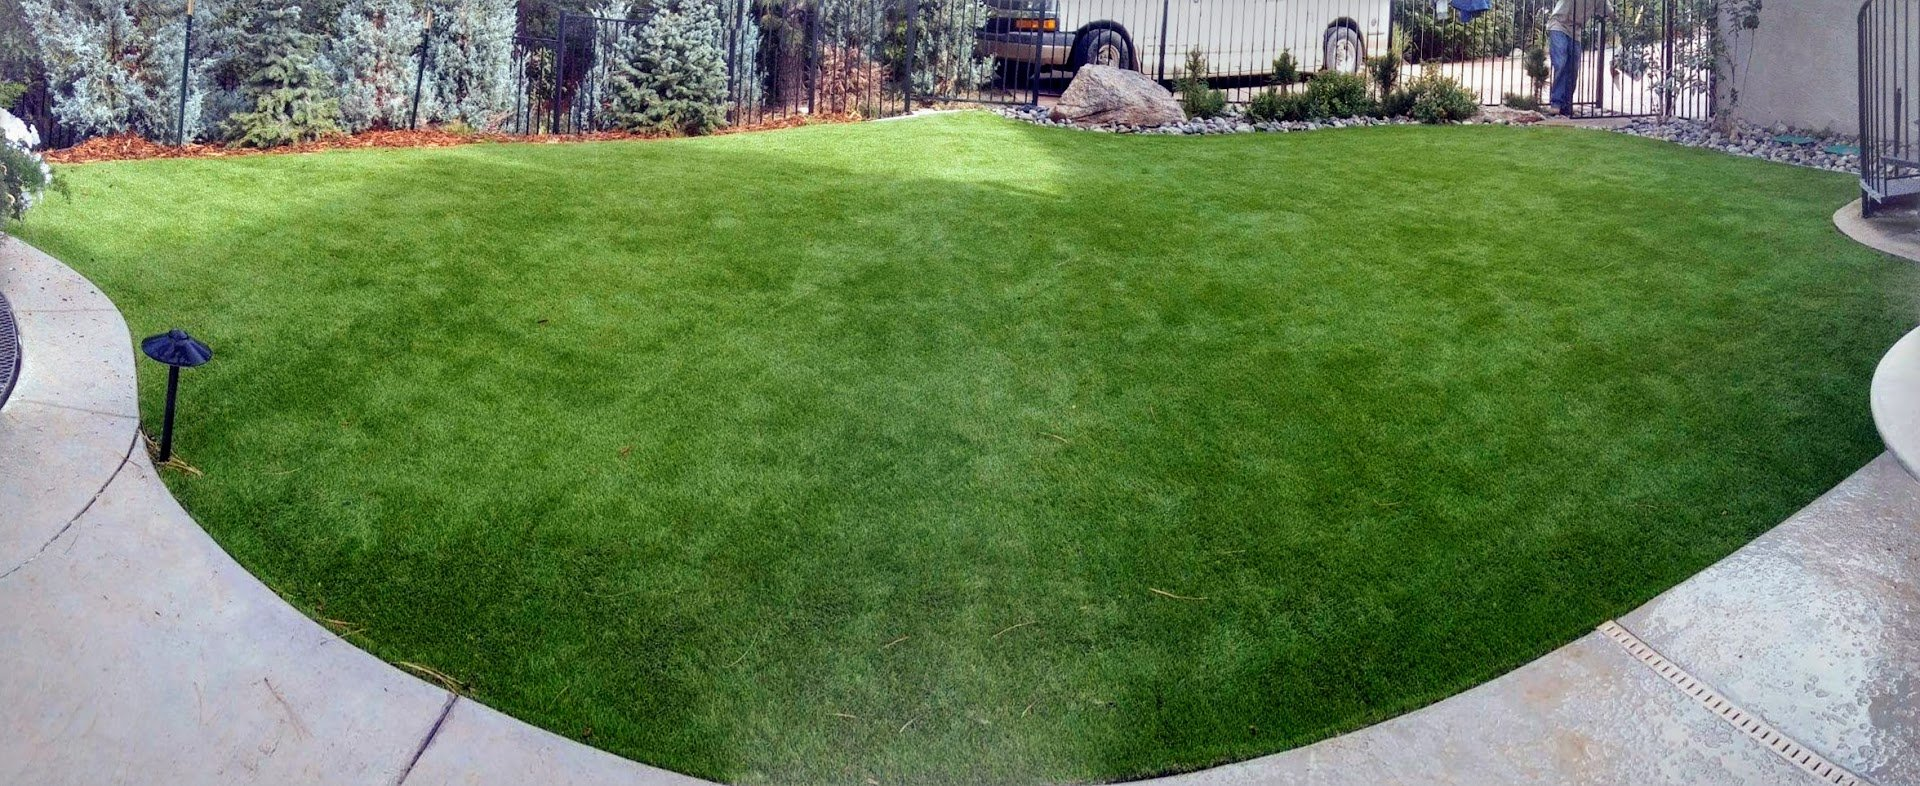 All Season Prime Synthetic Grass - Artificial Turf - Drainage Holes, 2'' blades Great for Sunny Climates (10' x 15') by Turf Pros Solution (Image #9)